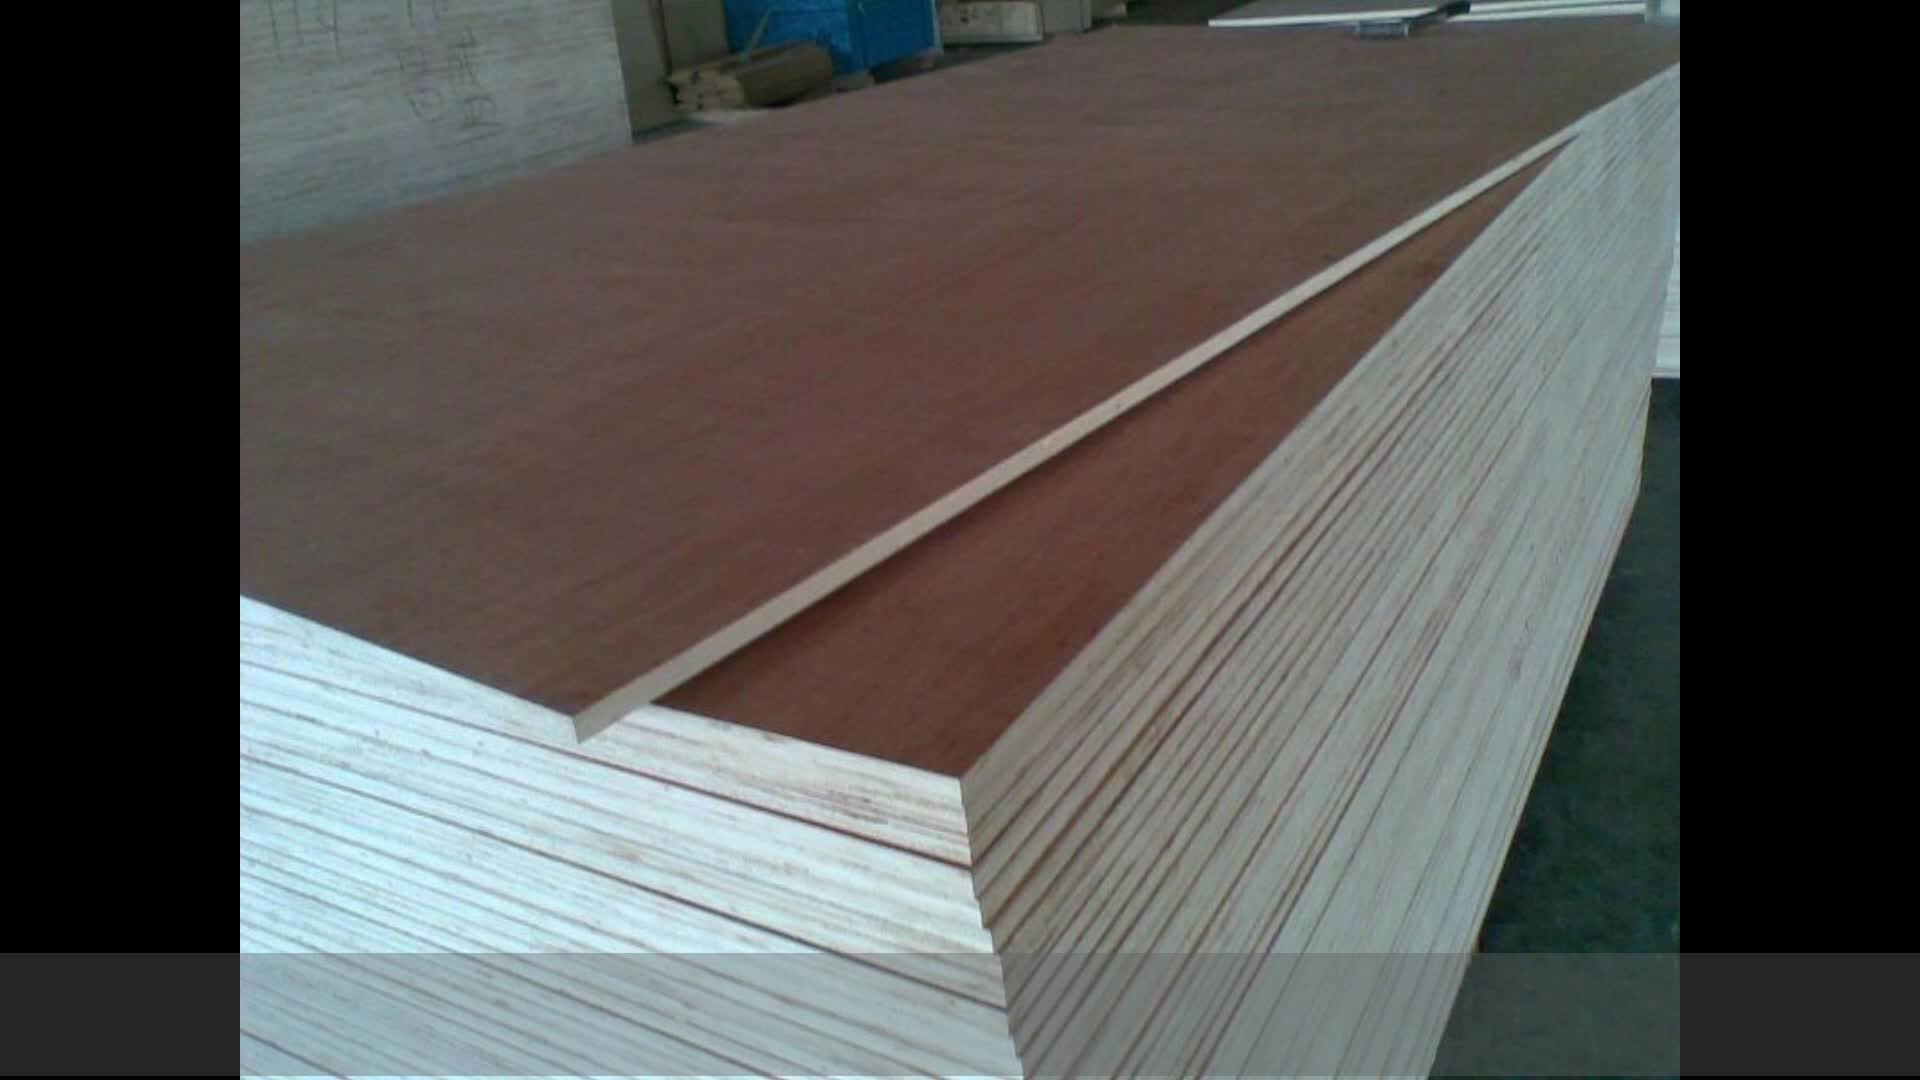 Bintangor plywood-the material of wooden pallets